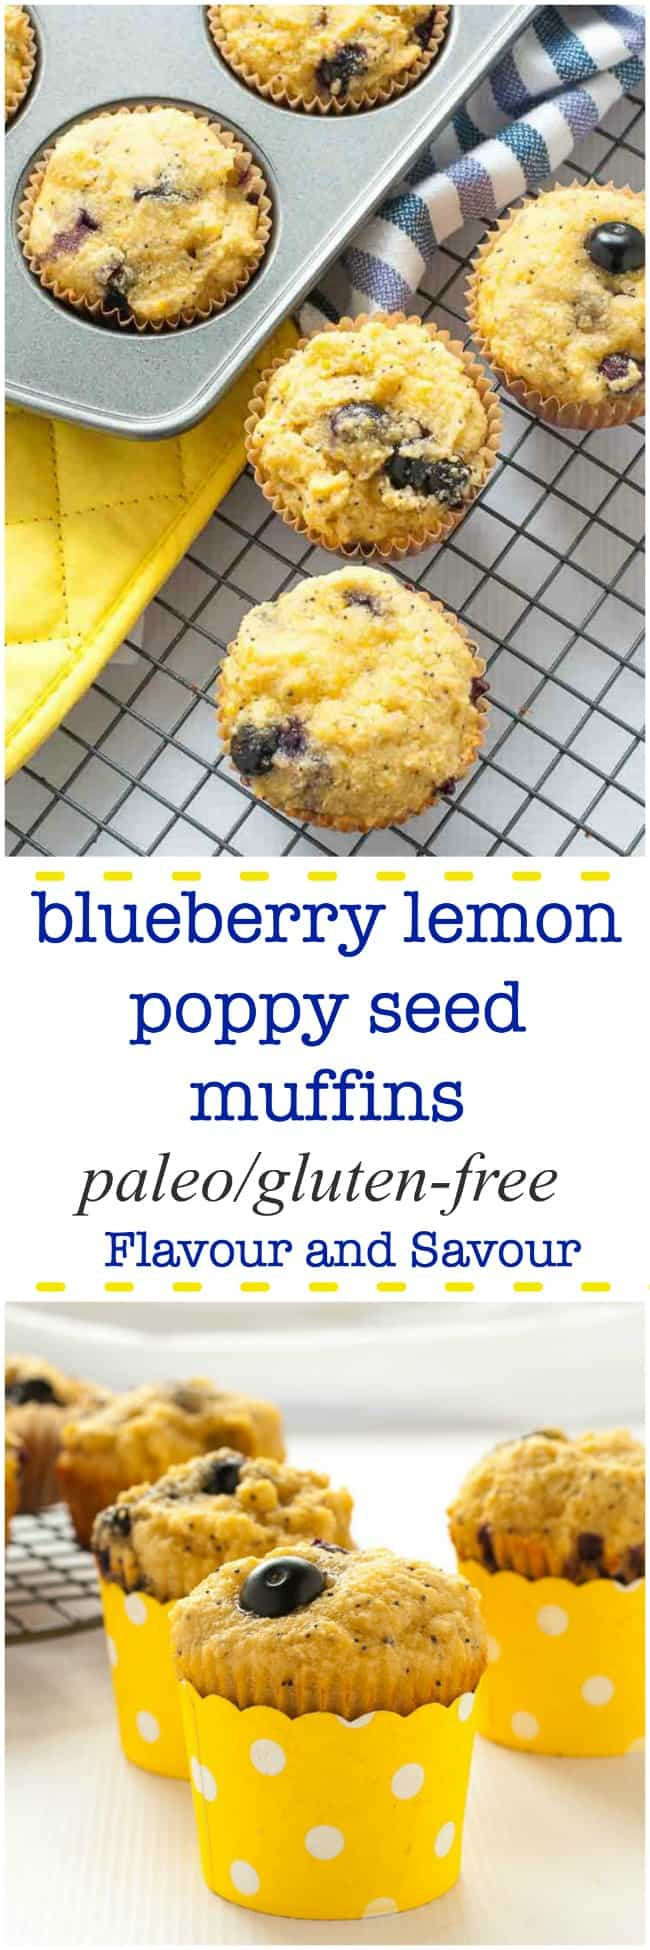 These Paleo Blueberry Lemon Poppy Seed Muffins are made with almond flour, honey, and fresh blueberries. They're light and lemony and they're gluten-free!